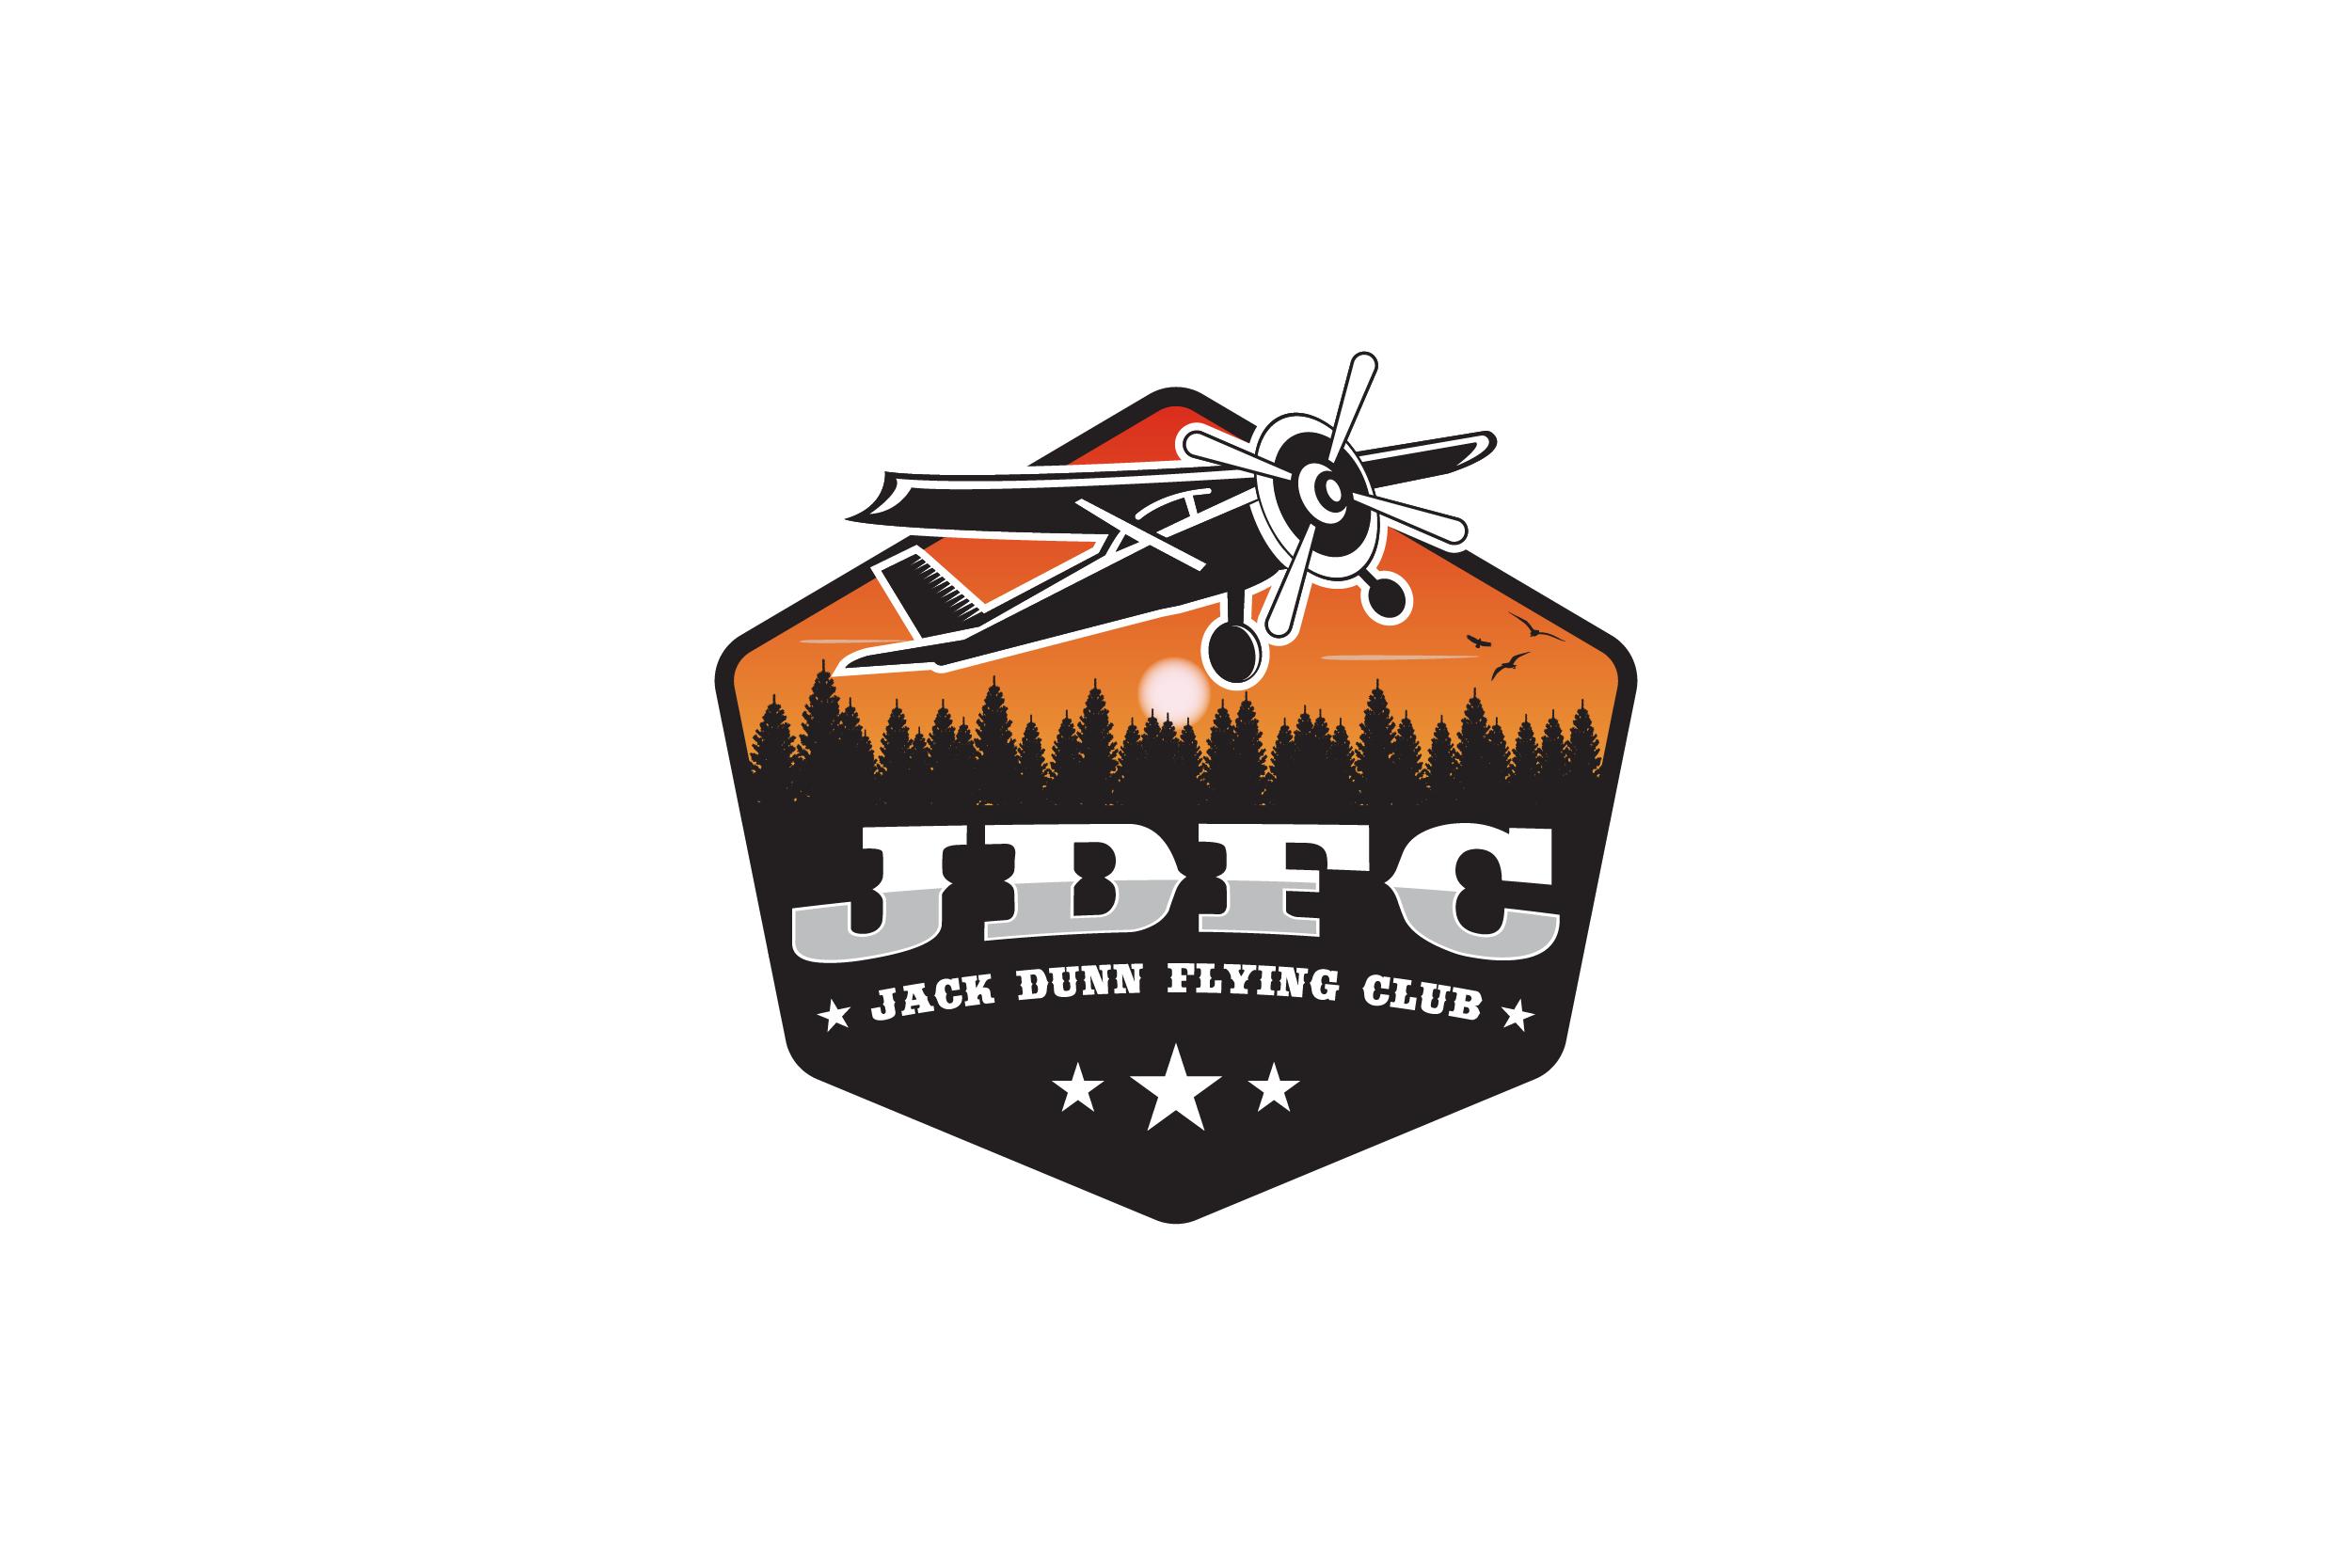 Jack Dunn Flying Club